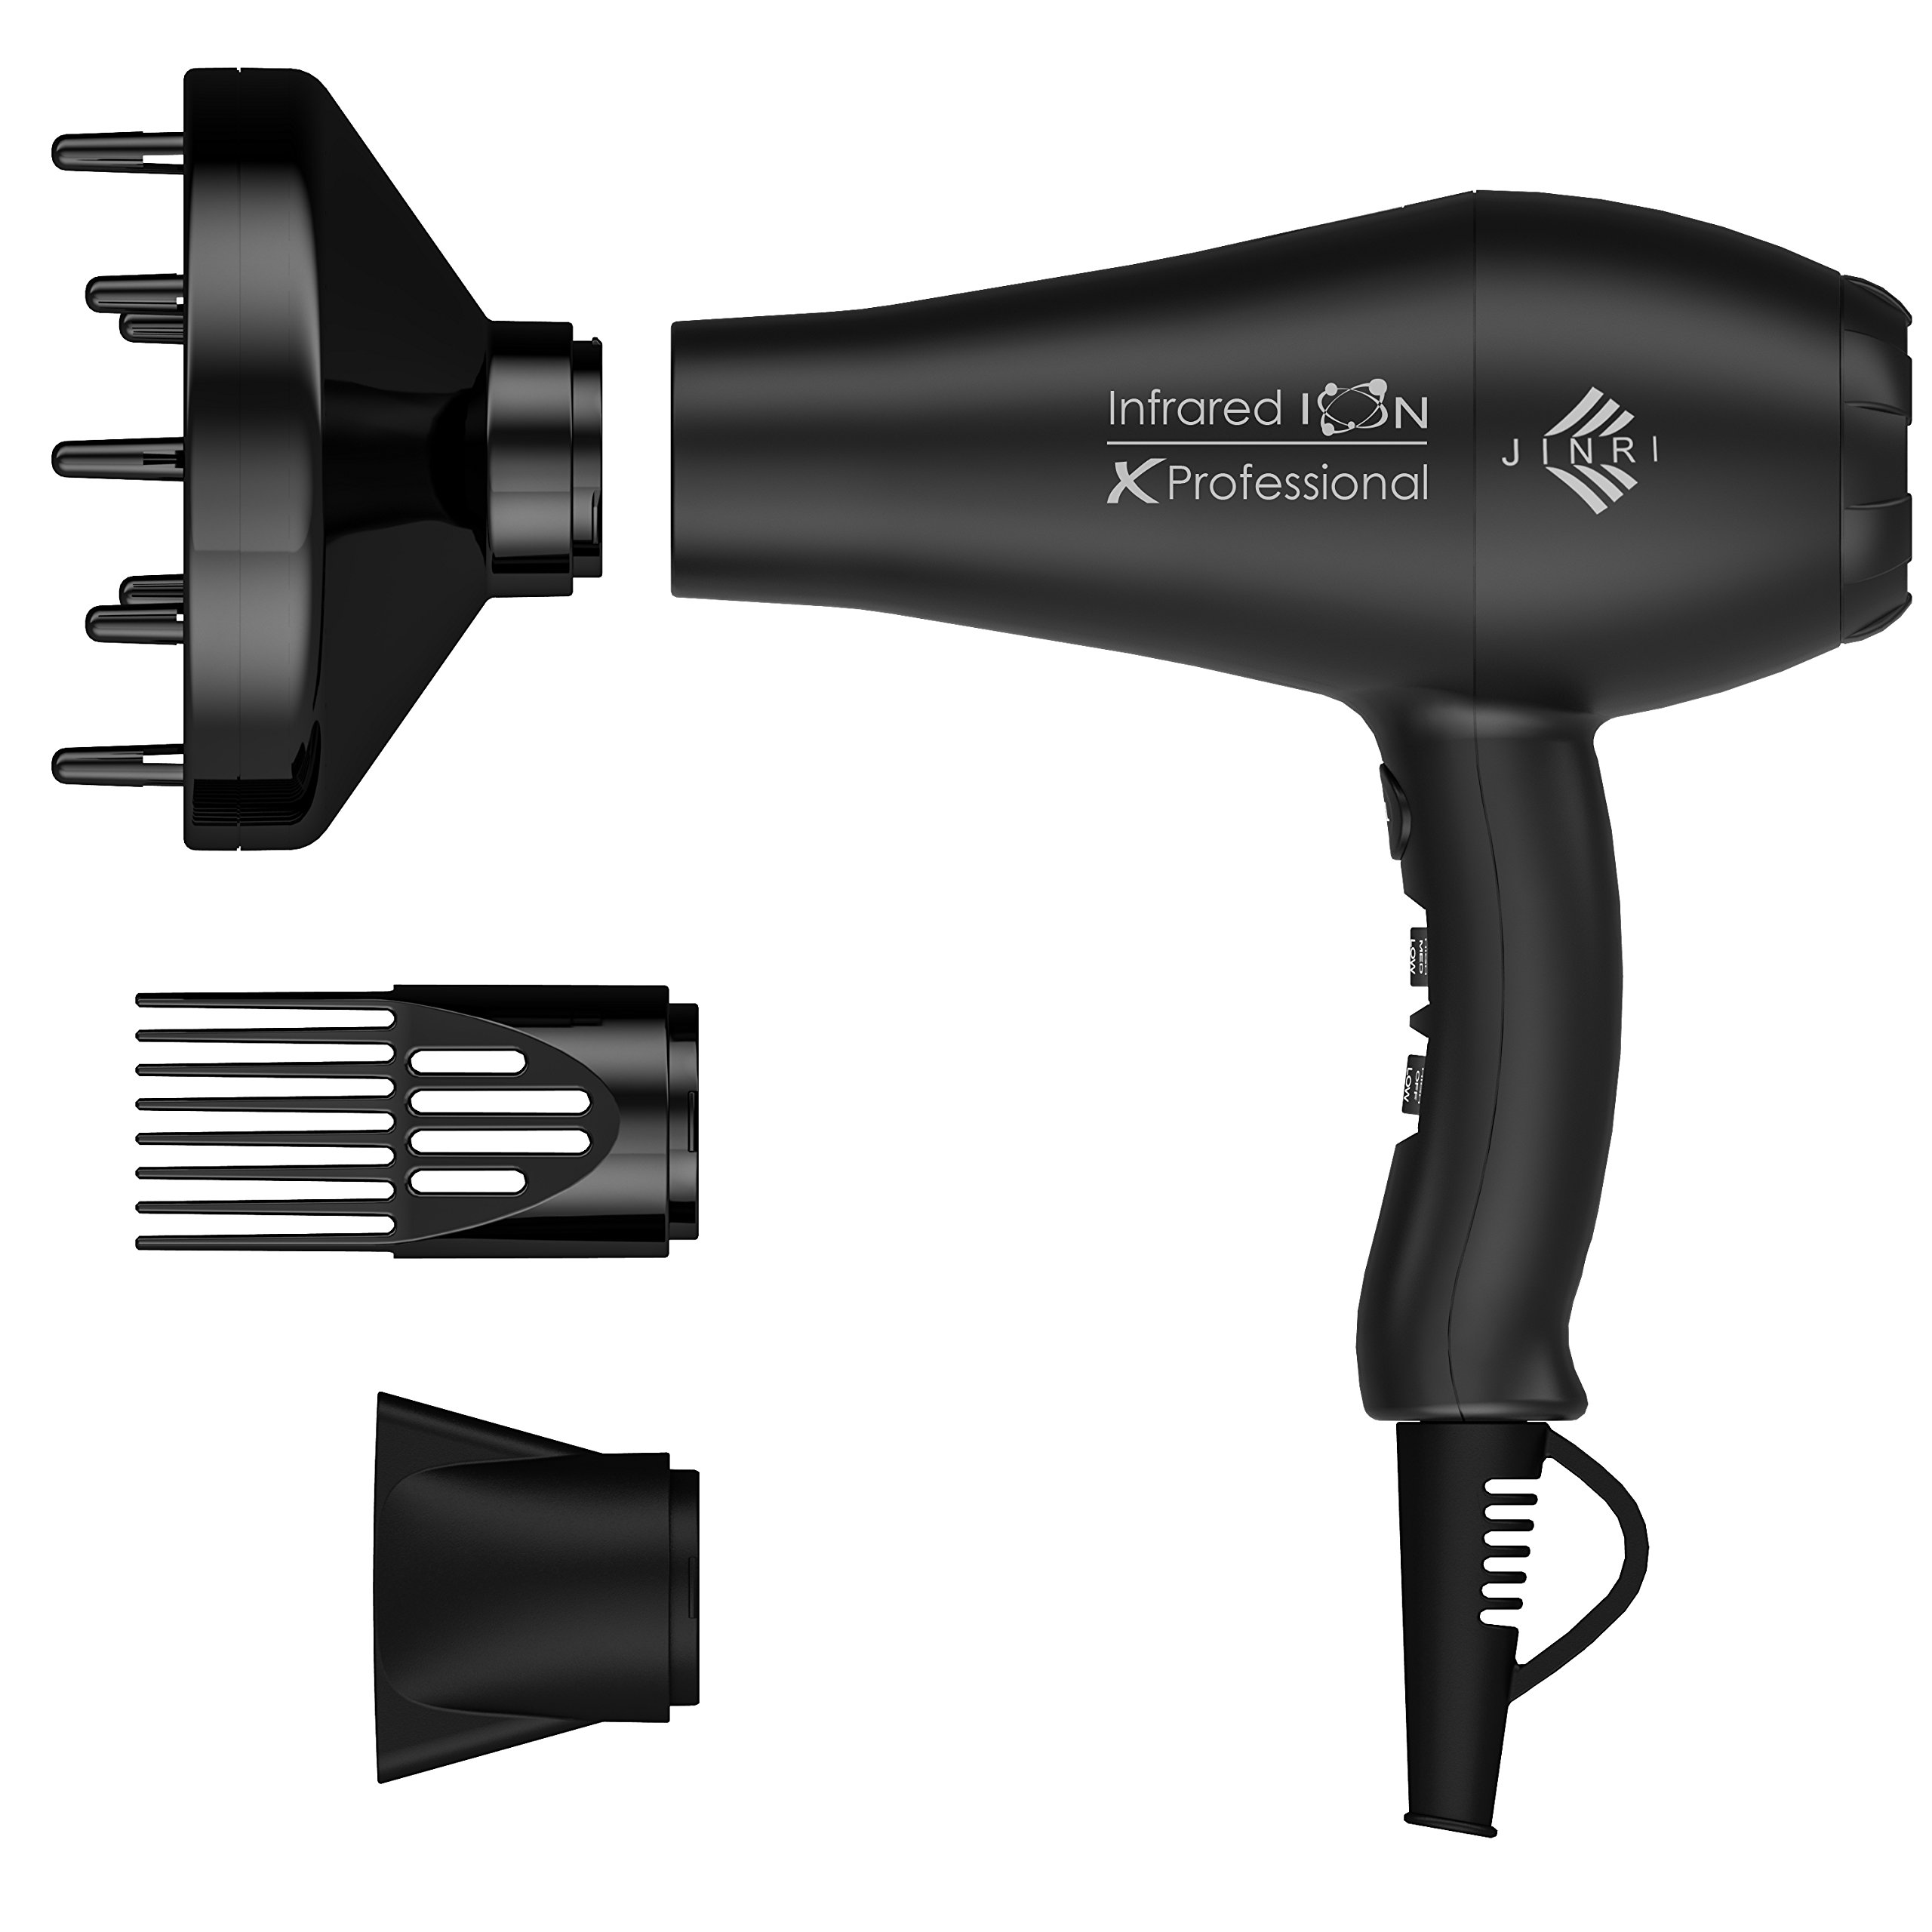 Jinri Professional Salon 1875w Far Infrared Negative Ion 2 Speeds 3 Heat Ionic Hair Dryer with Diffuser and Concentrator,Black Color by Jinri (Image #1)